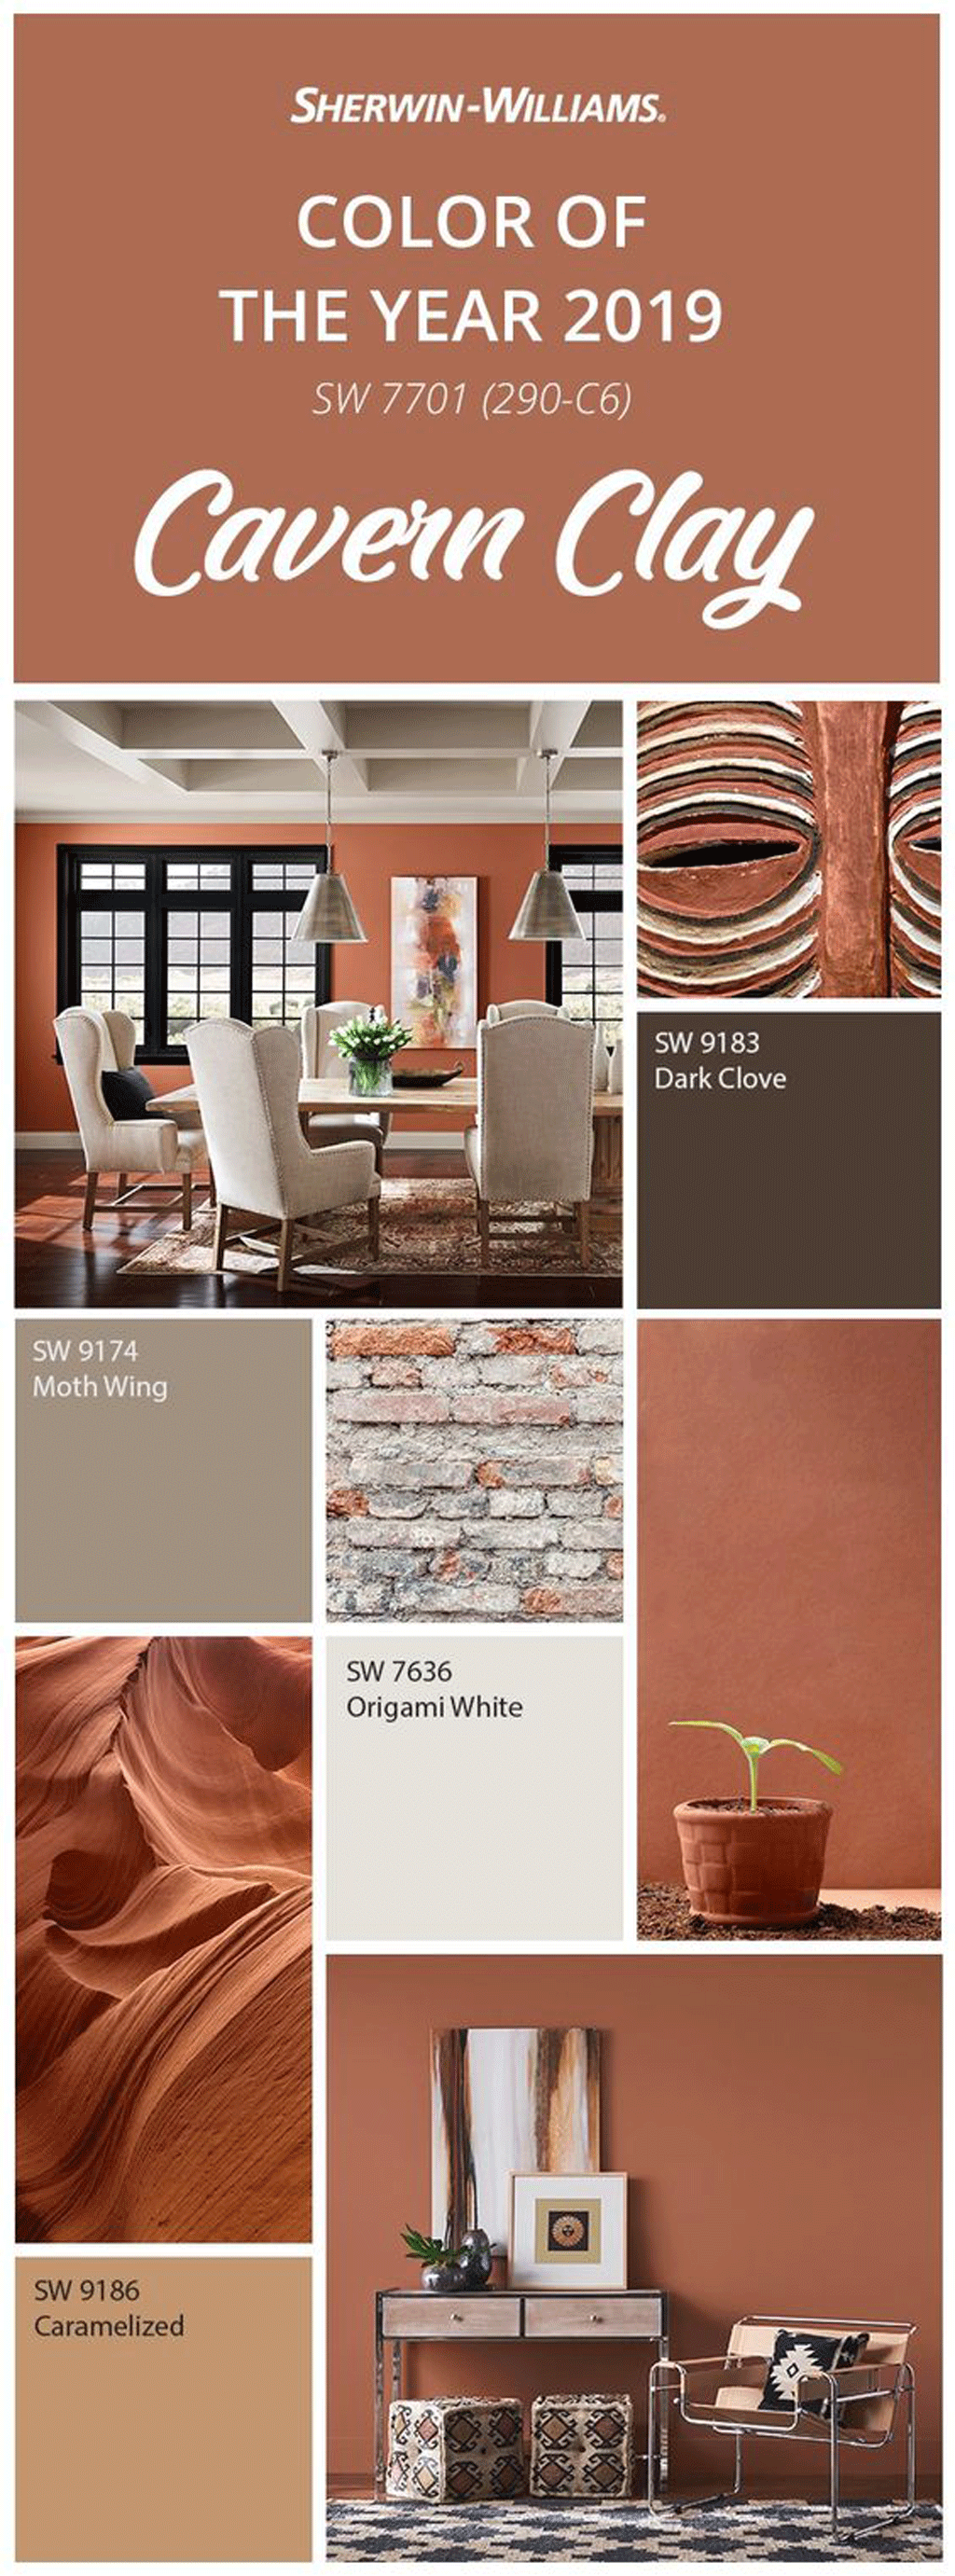 Sherwin-Williams Color of the Year 2019: Cavern Clay SW 7701